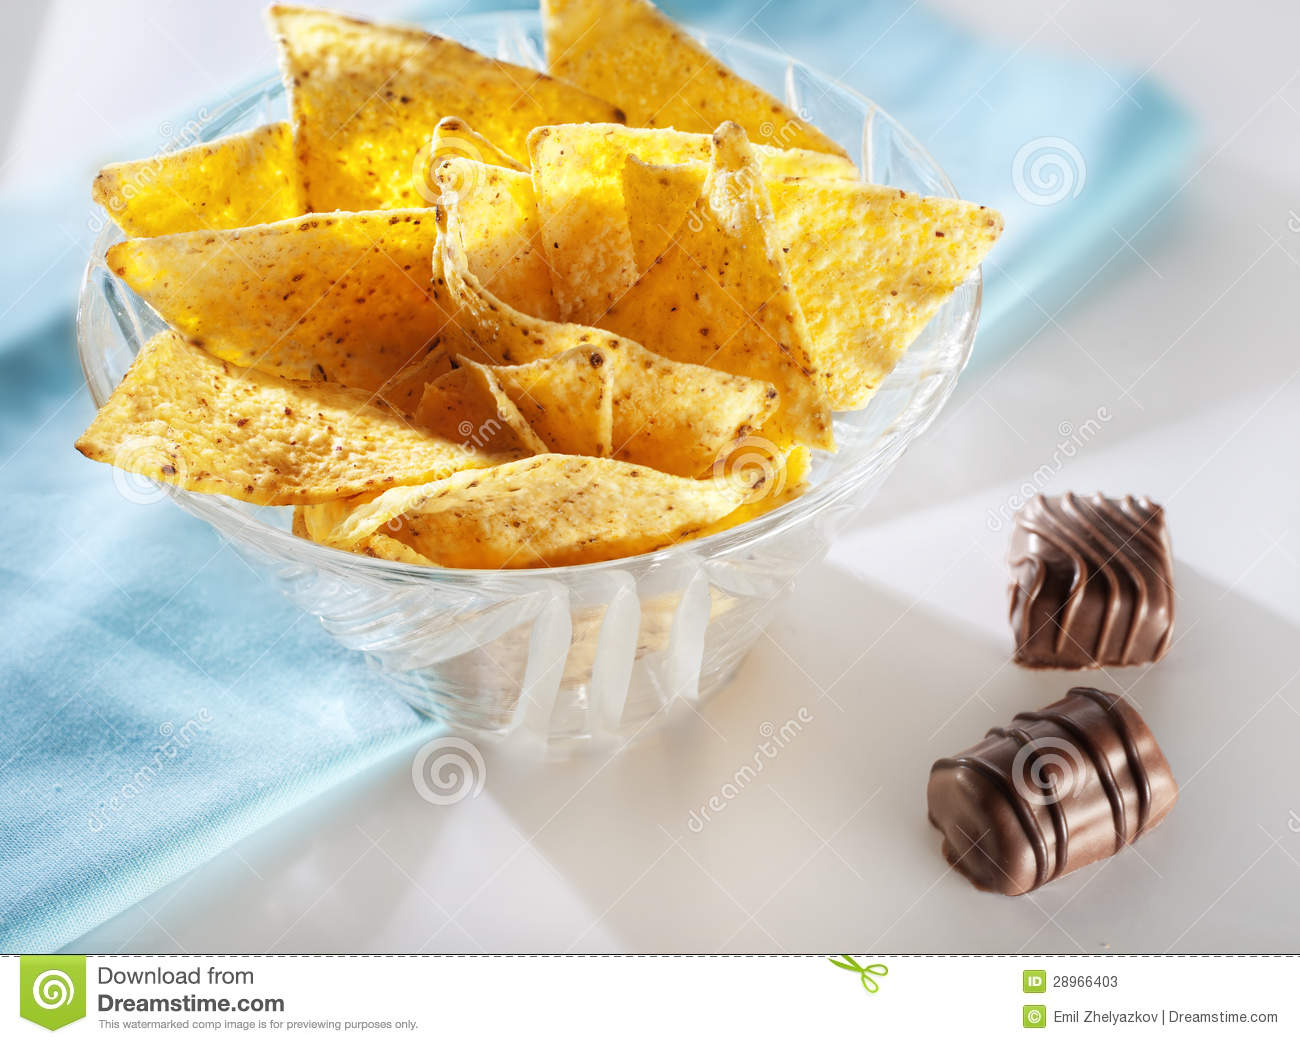 Chips and chocolates